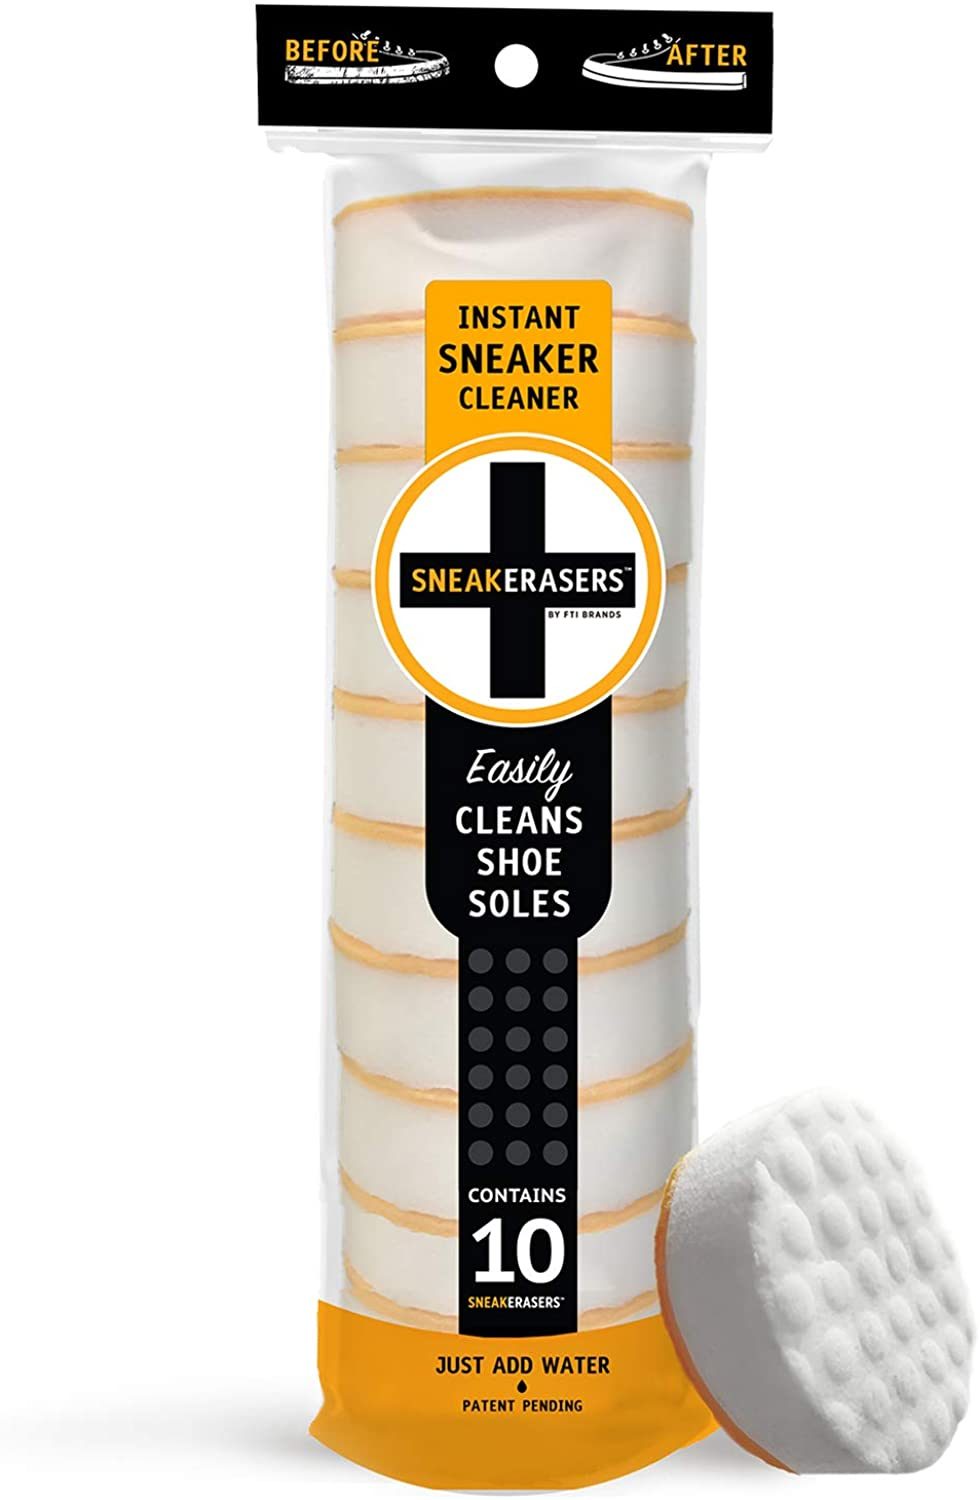 SneakERASERS Instant Sole and Sneaker Cleaner, Premium Dual-Sided Sponge for Cleaning & Whitening Shoe Soles (10 Pack)